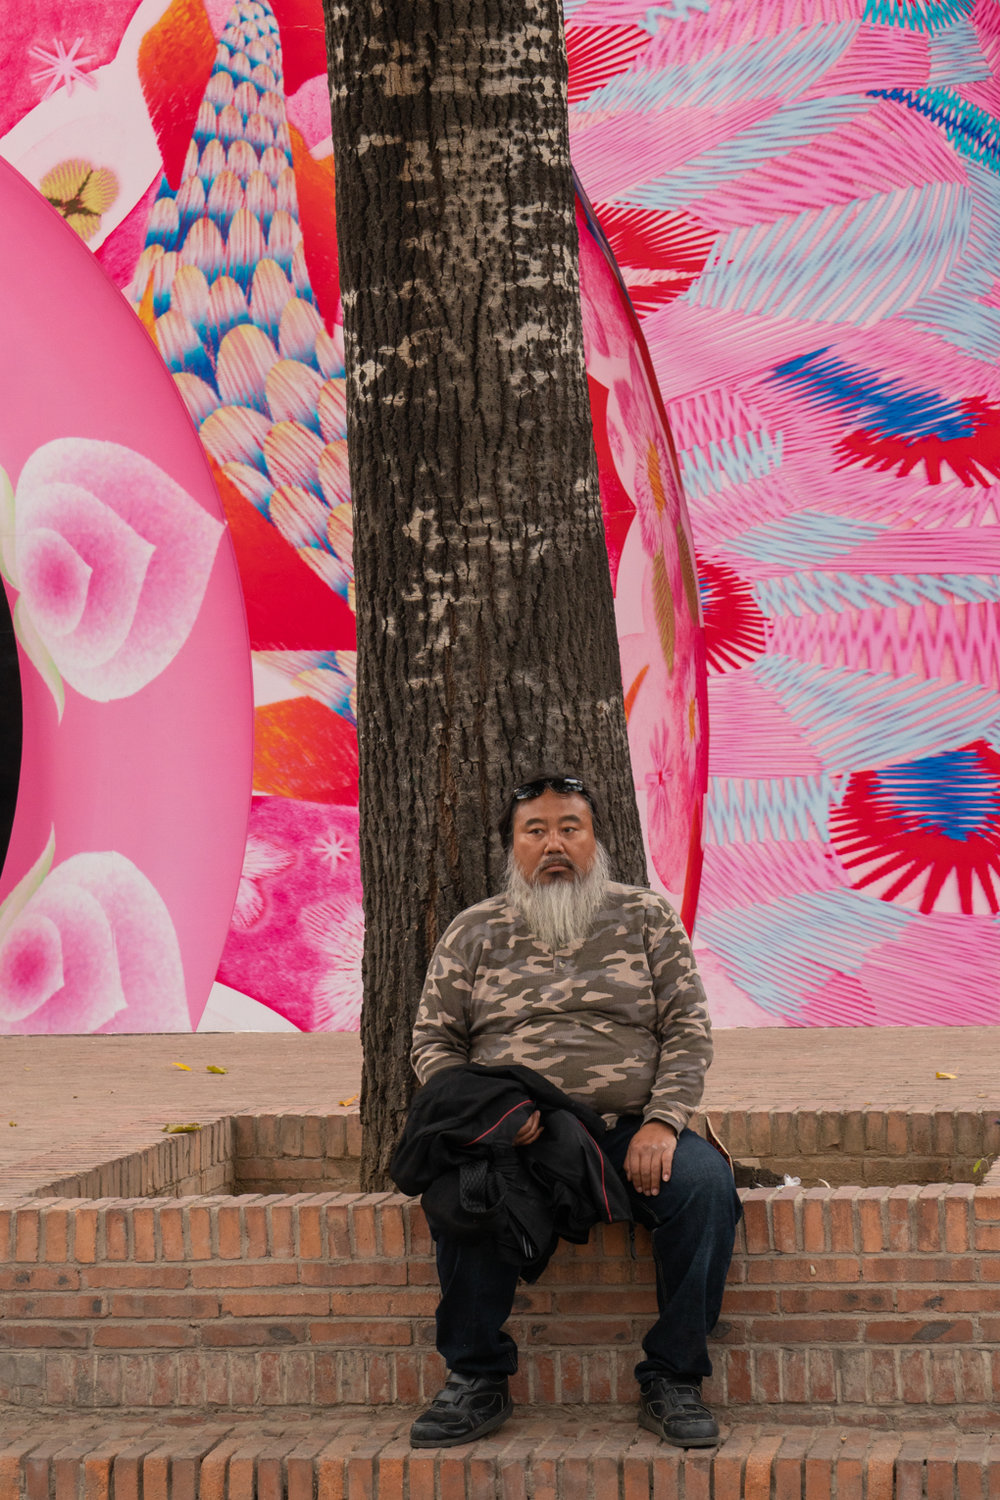 Medium_Man_Beijing_Art_zone.jpg